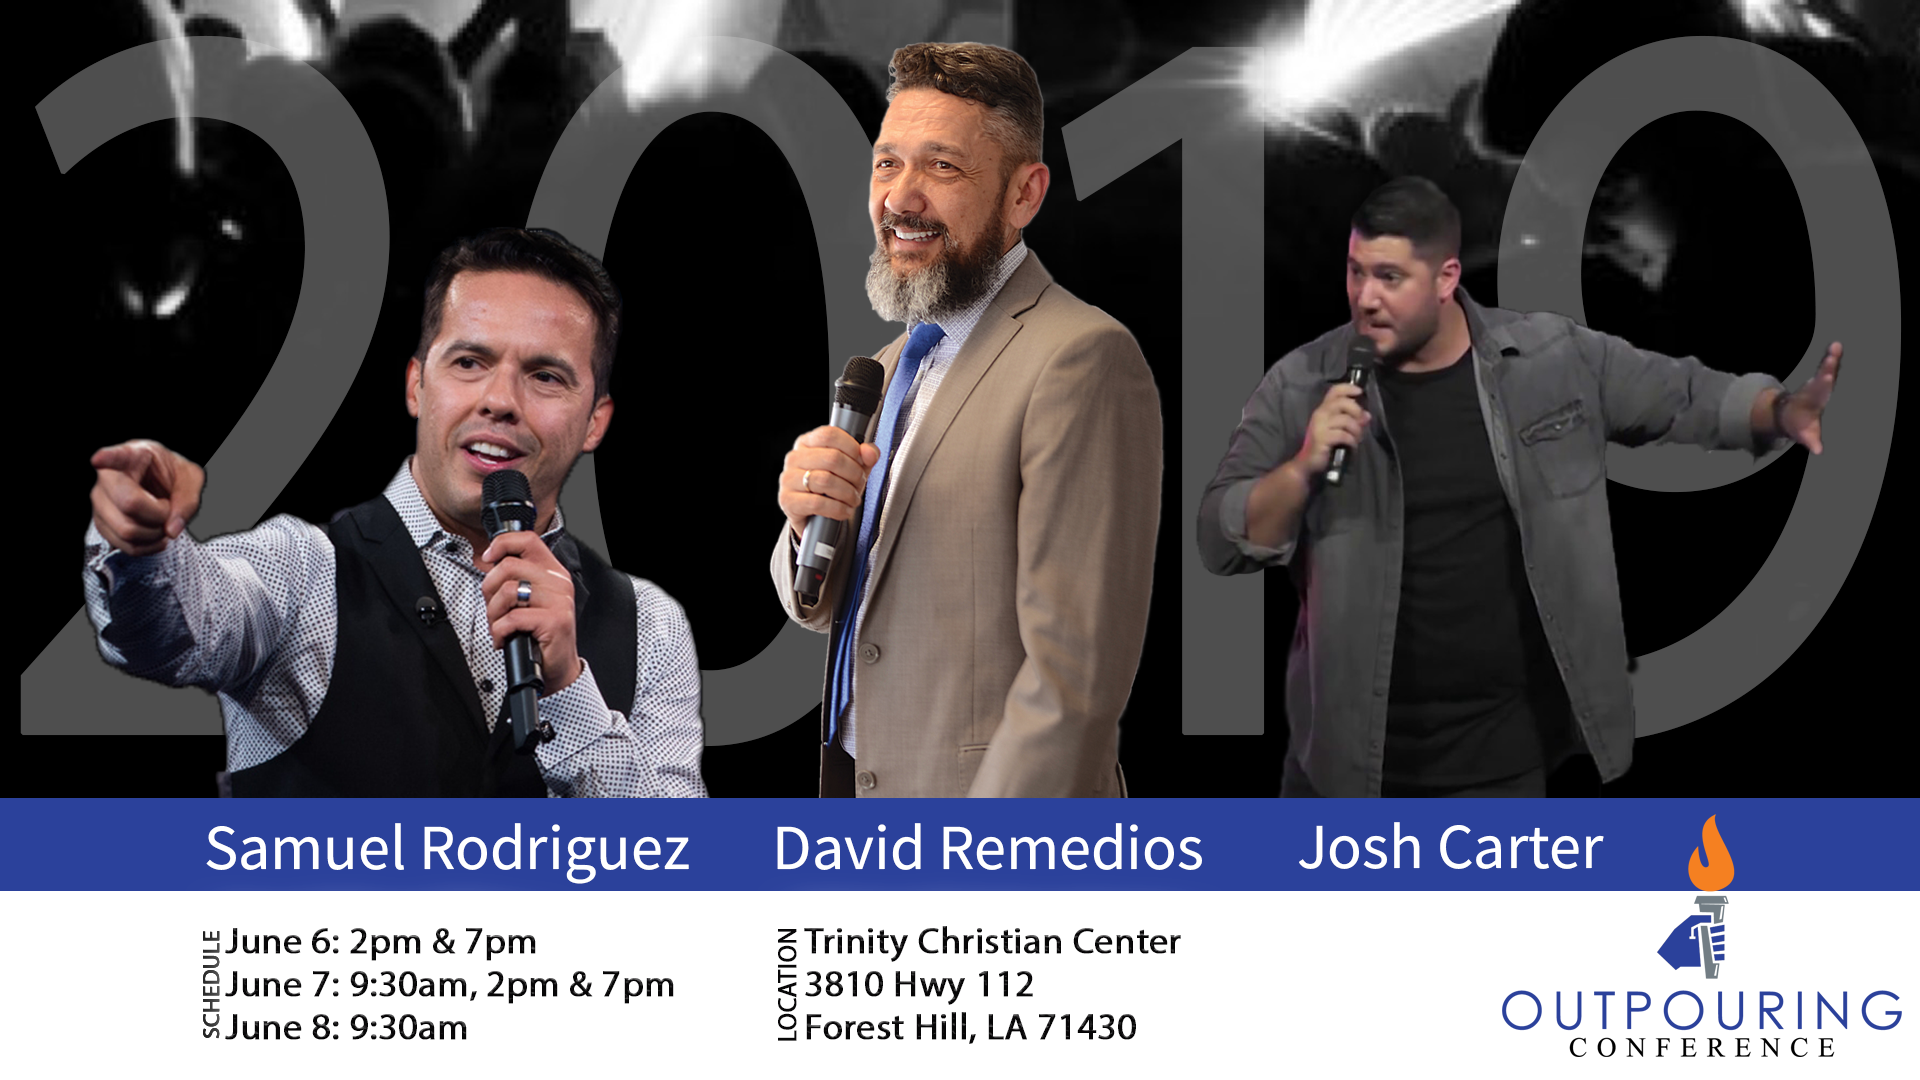 Speakers Samuel Rodriguez, David Remedios, Josh Carter